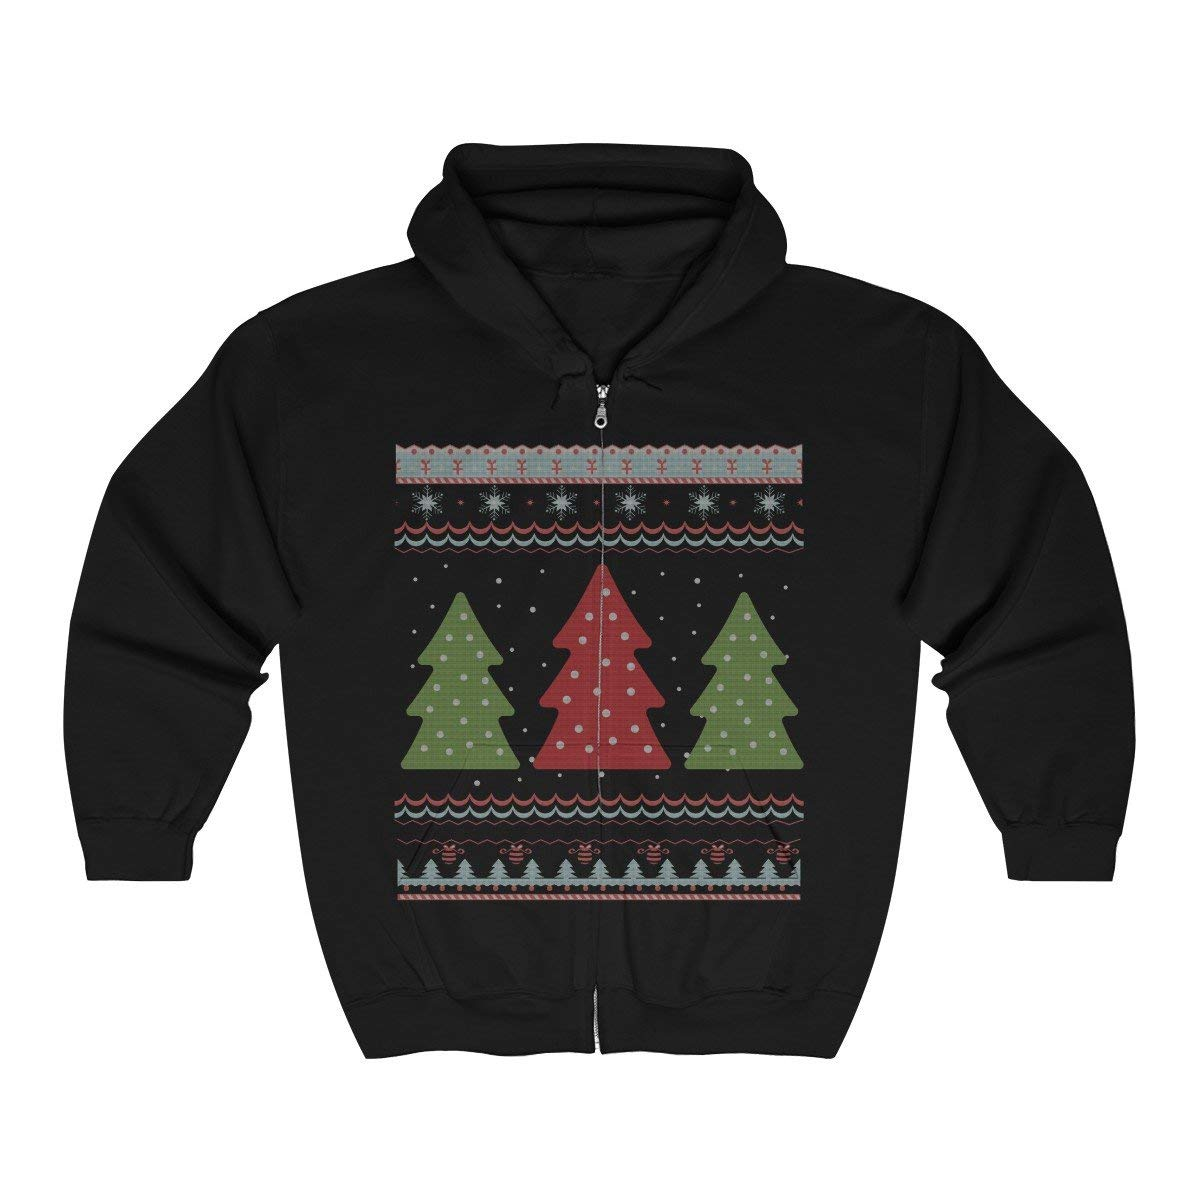 Doryti Tree Christmas Zip Hooded Sweatshirt